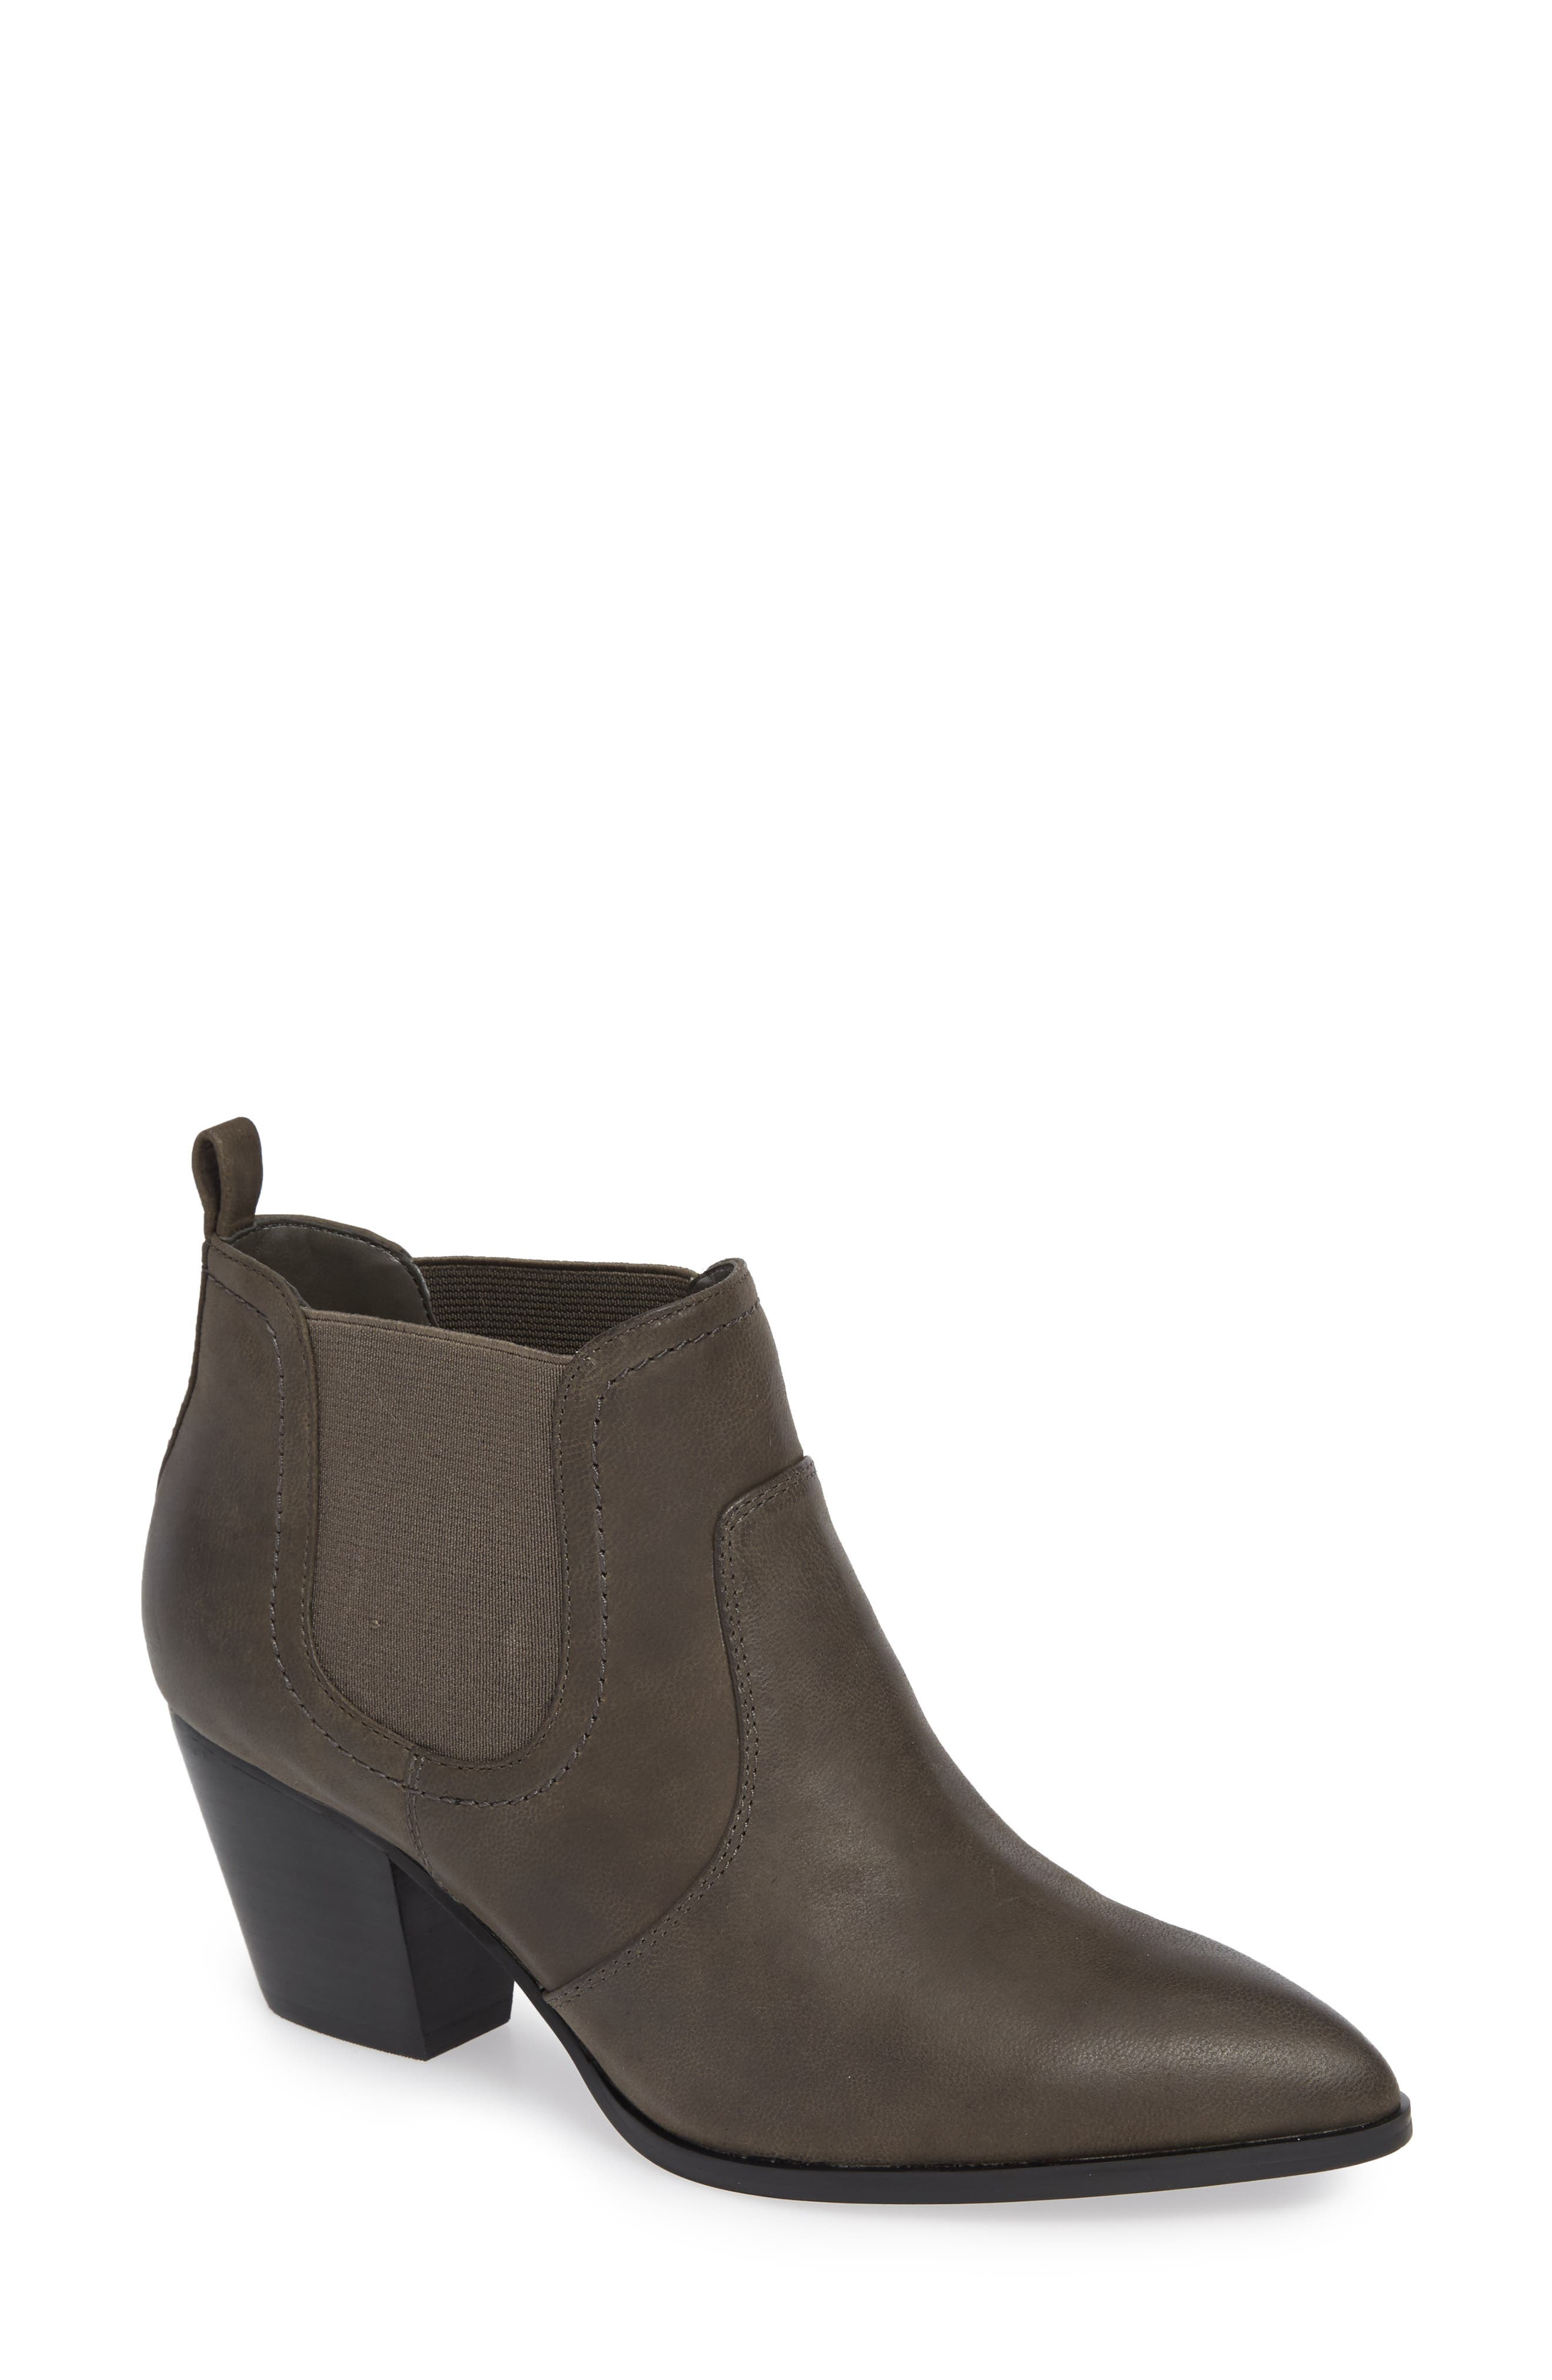 Emerson Chelsea Bootie,                             Main thumbnail 1, color,                             GREY BURNISHED LEATHER